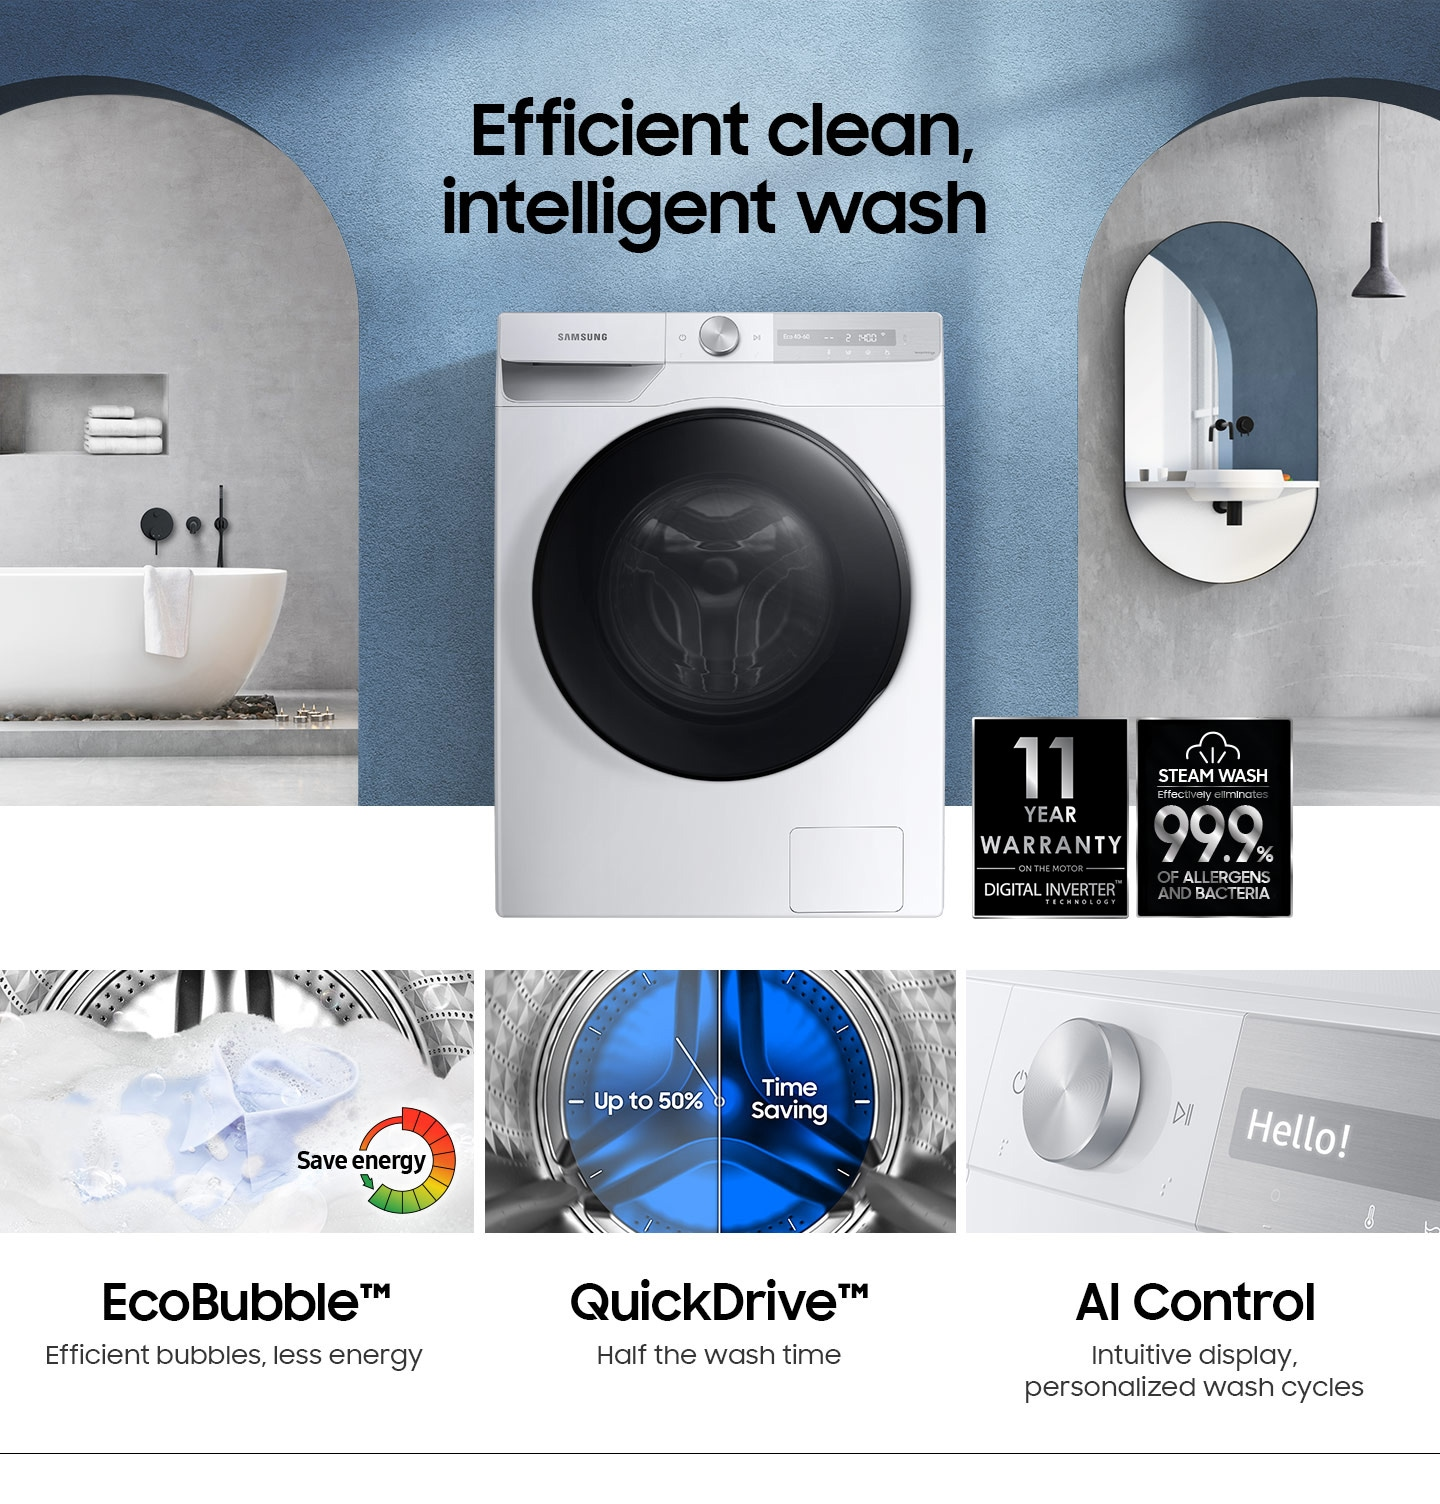 WD7300T is germ-free, and 10-year warranty with EcoBubble, QuickDrive, and AI Control functions.